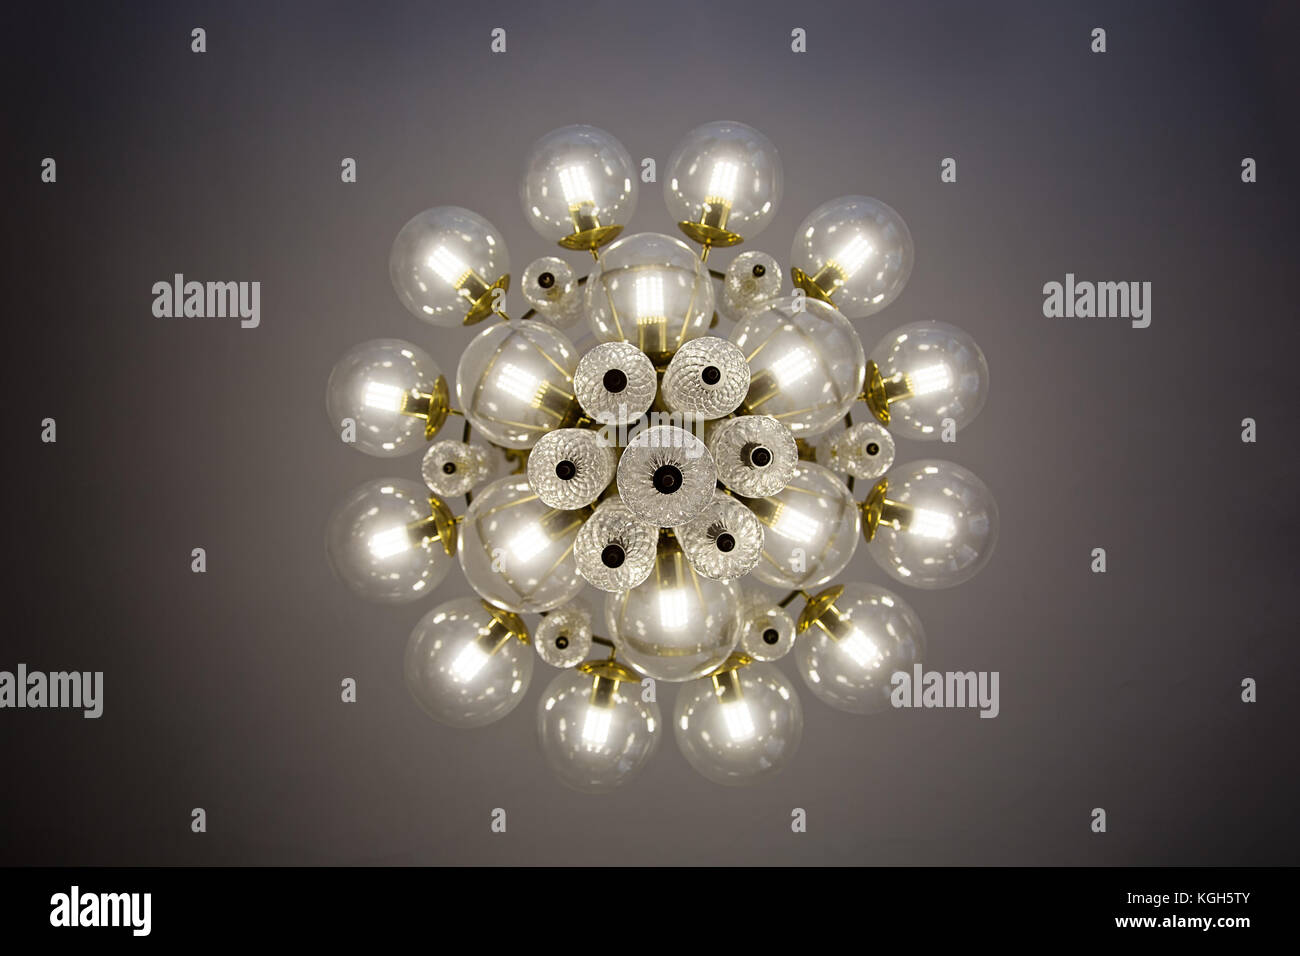 glass bulb chandelier glass ball crystal glass chandelier view from bottom round shape bulb covers lit energyefficient light bulbs